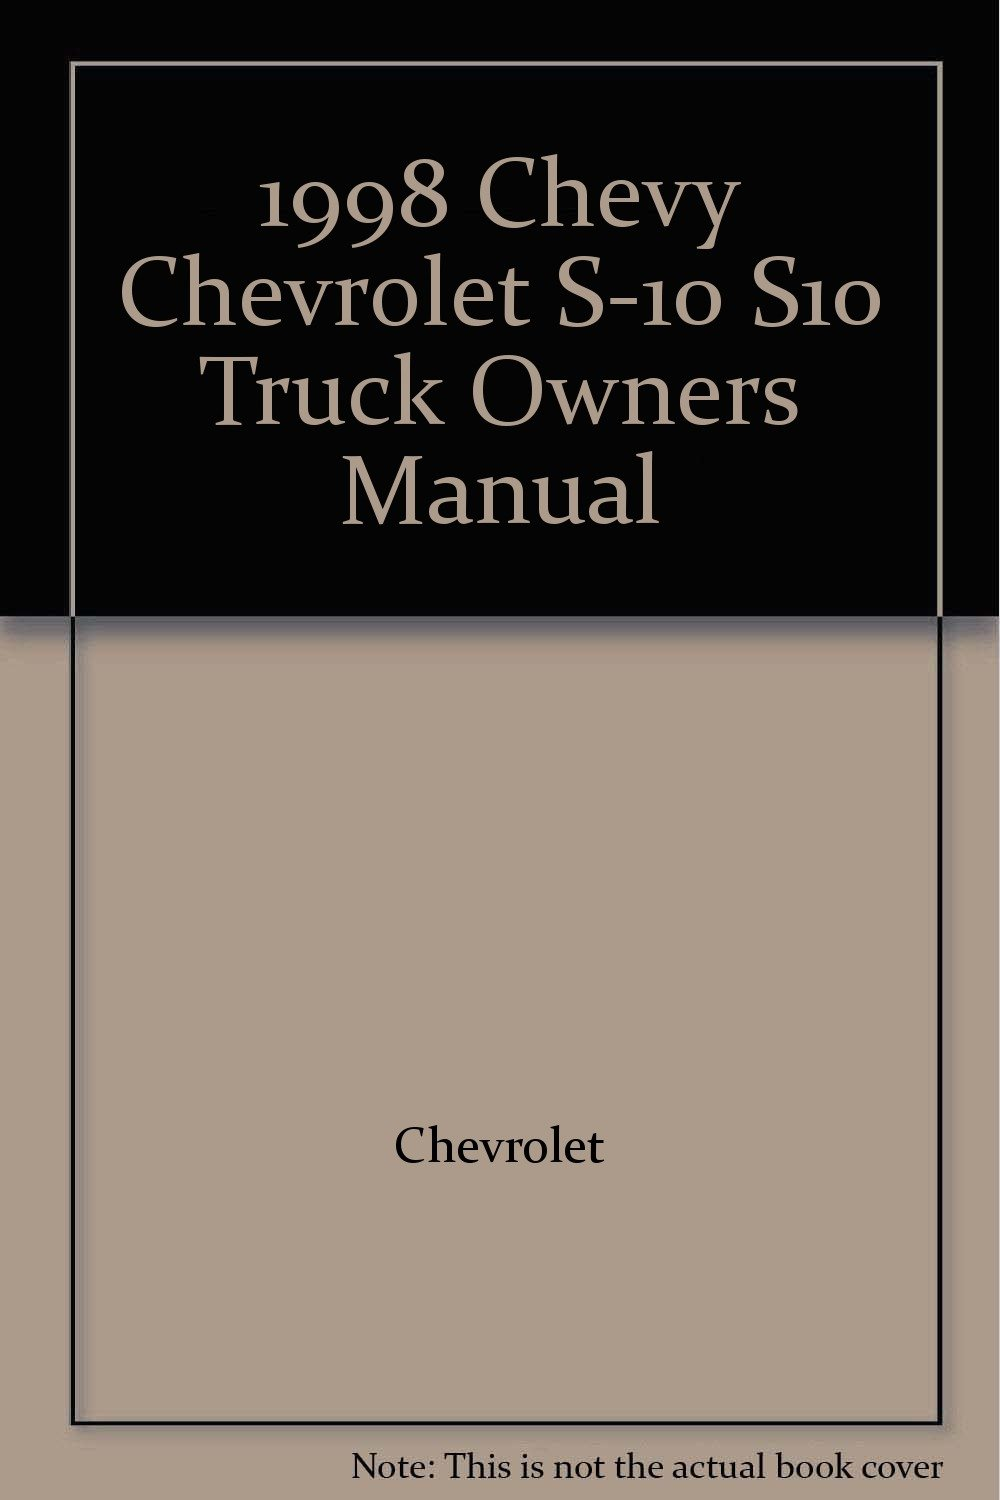 1998 Chevy Chevrolet S-10 S10 Truck Owners Manual: Chevrolet: Amazon.com:  Books